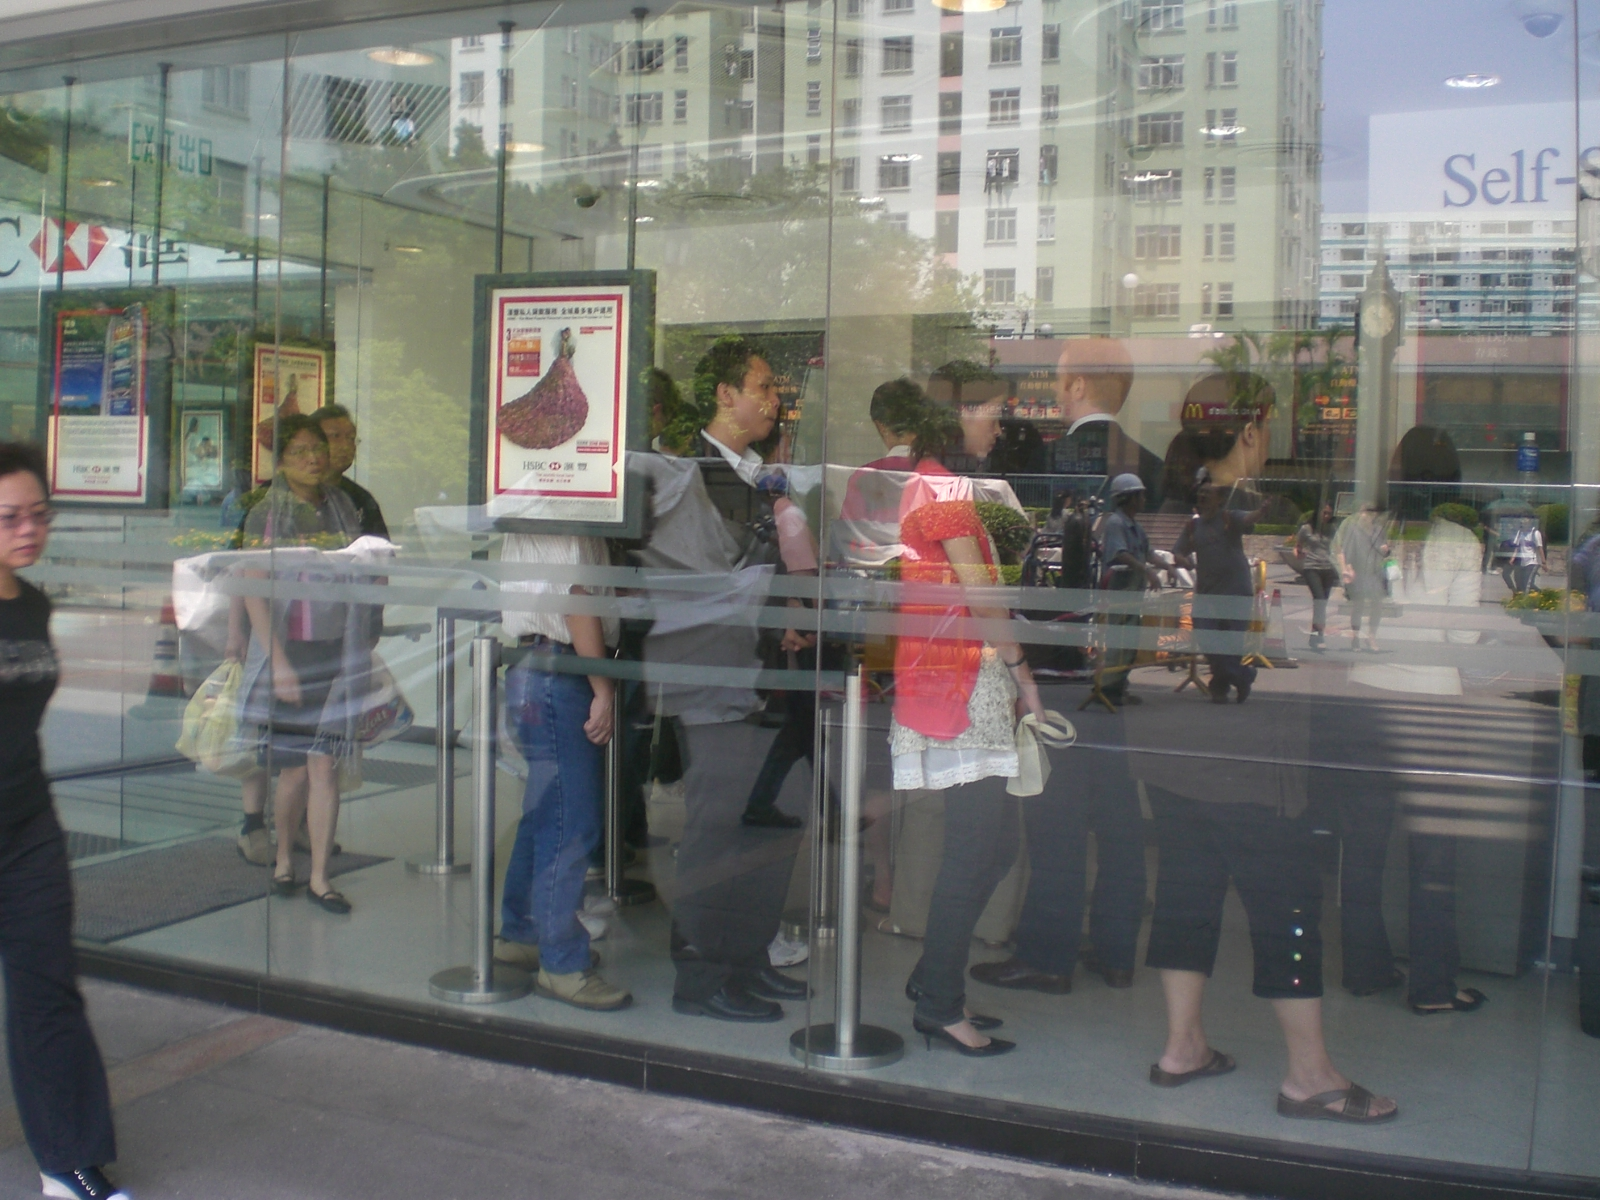 File:HK Kln Bay Telford Plaza Noon Lunch Hours Queue HSBC JPG